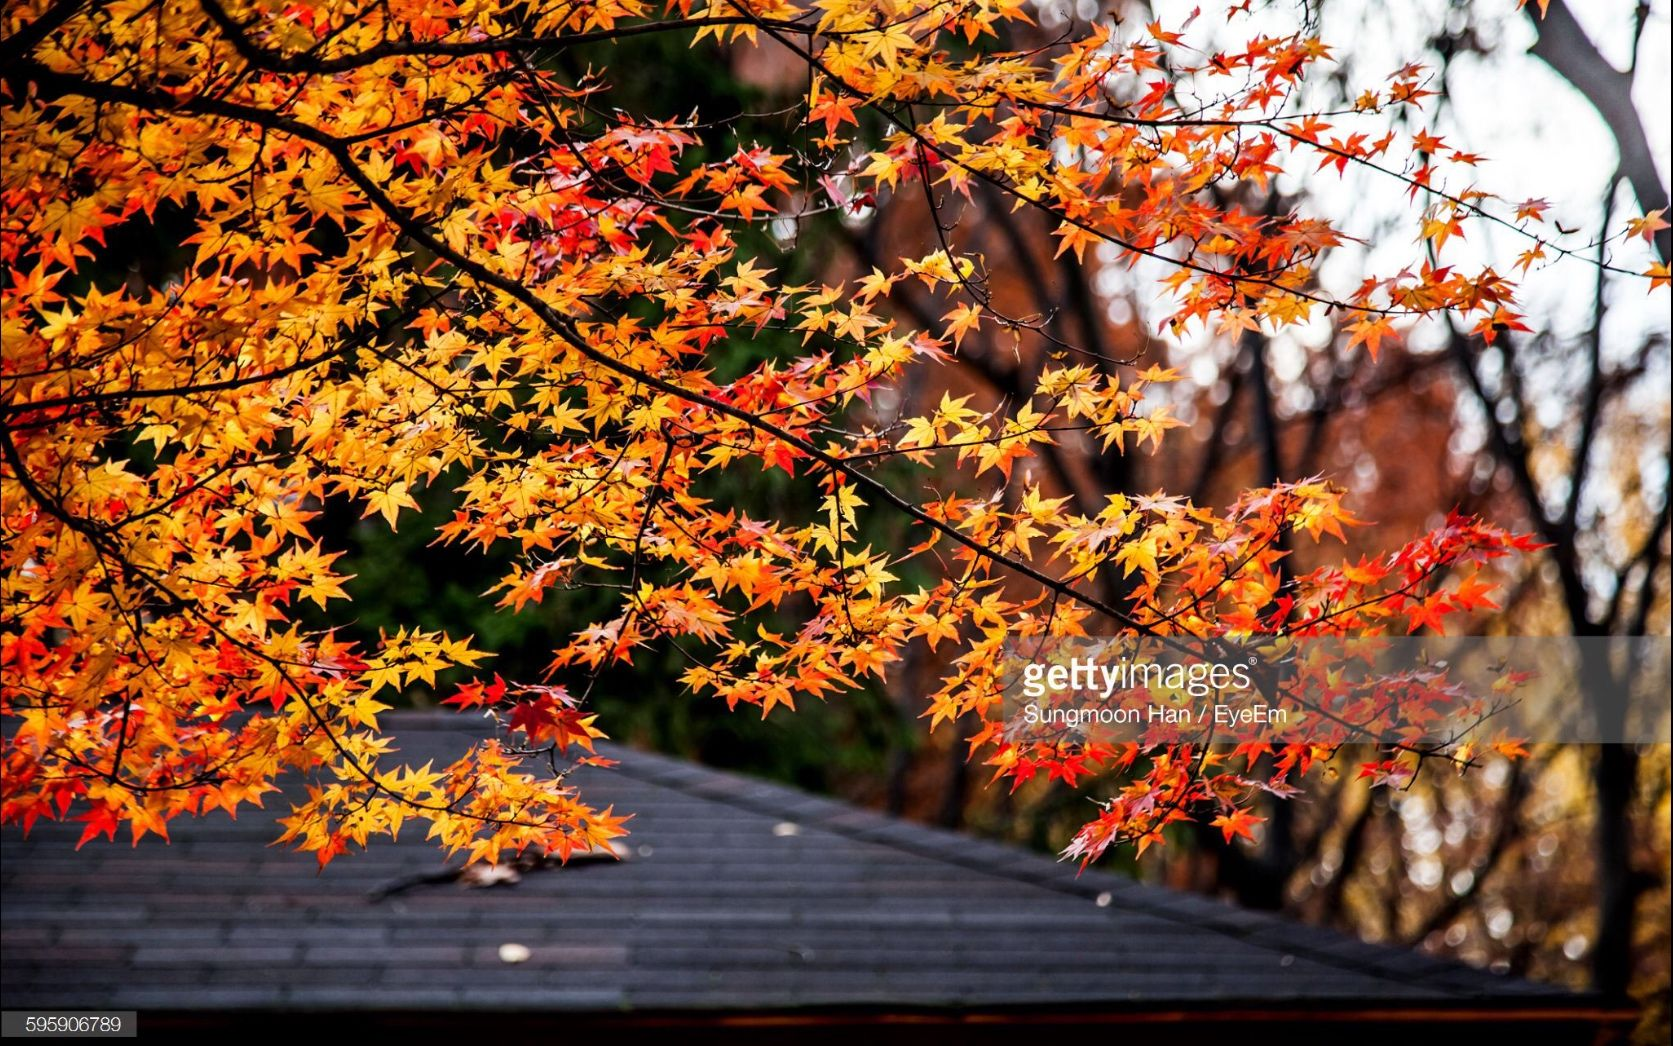 Yangjae Citizen's Forest, Seoul, South Korea (Photo by eyepurifier, Alex SM Han)  http://www.gettyimages.com/search/2/image?phrase=Sungmoon&family=creative  #양재 #시민의숲 #가을 #단풍 #서울 #landscape #Gettyimages #autumn #foliage #fallenleaves #fall #season #Seoul #southkorea #autumncolors #tranquility #calm #park #forest #brown #silent #yellow #red #sky #twig #tree #maple #mapleleaf